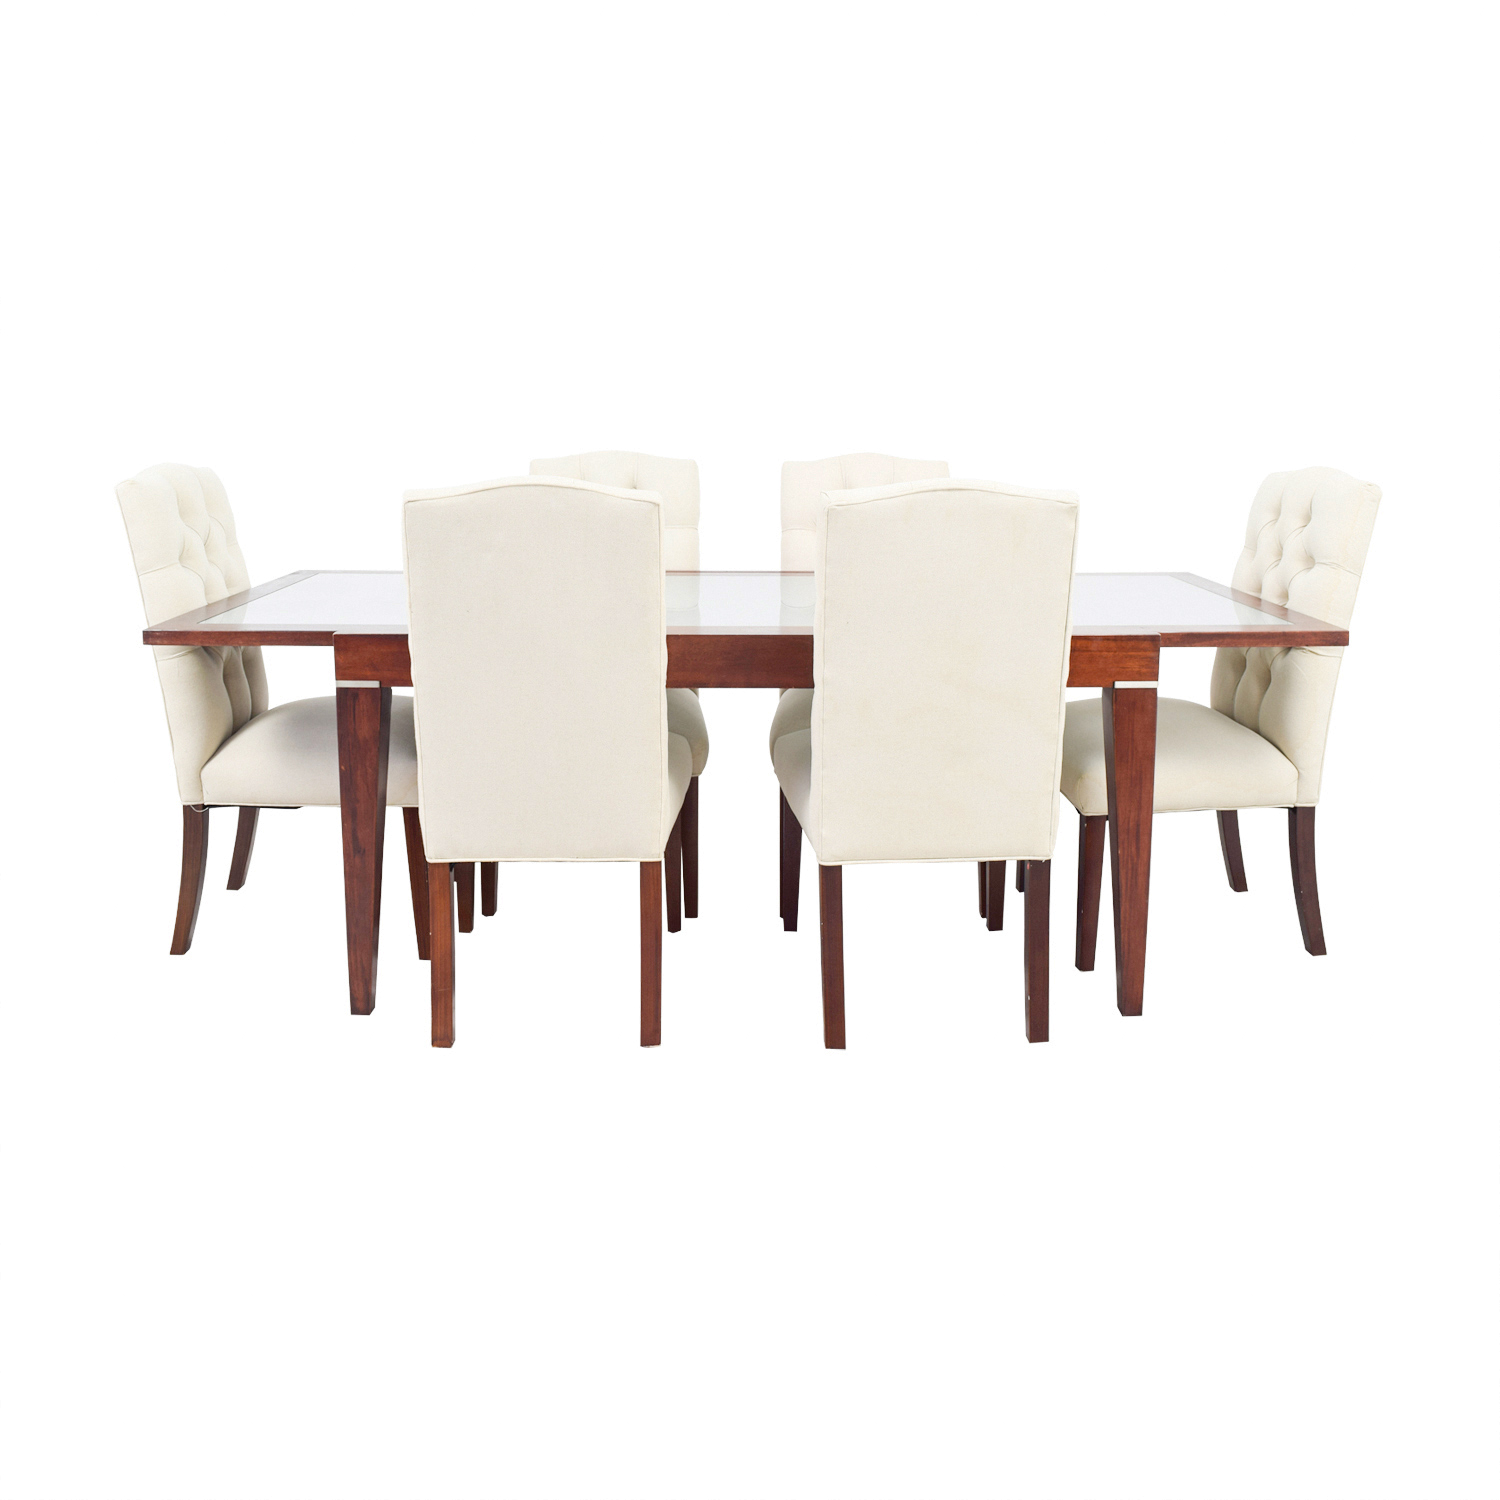 West Elm Extendable Glass & Wood Dining Set with Upholstered Tufted Chairs sale